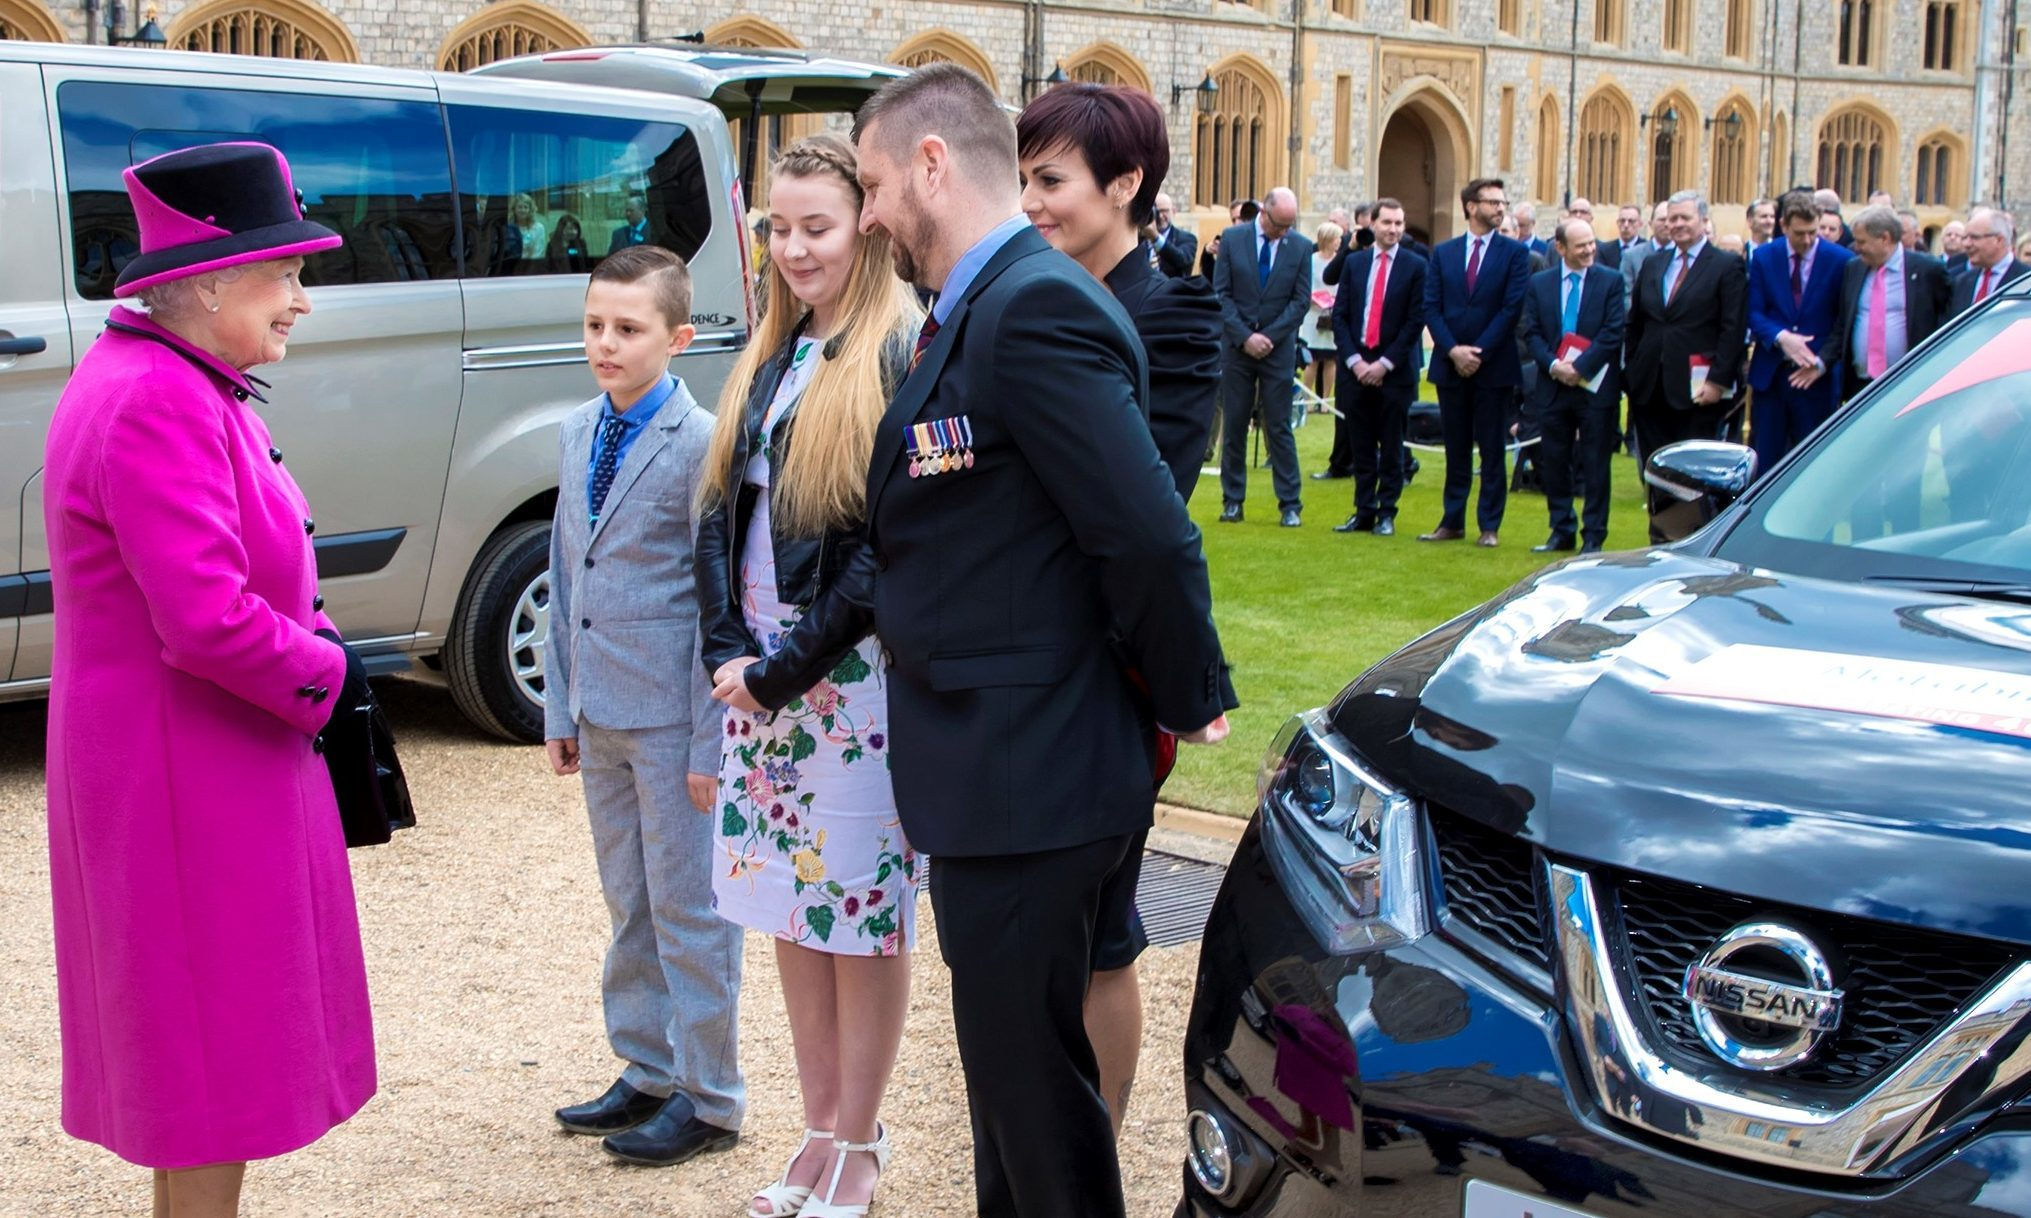 The Queen meets Paul and his family to present the keys to the new Motability vehicle.